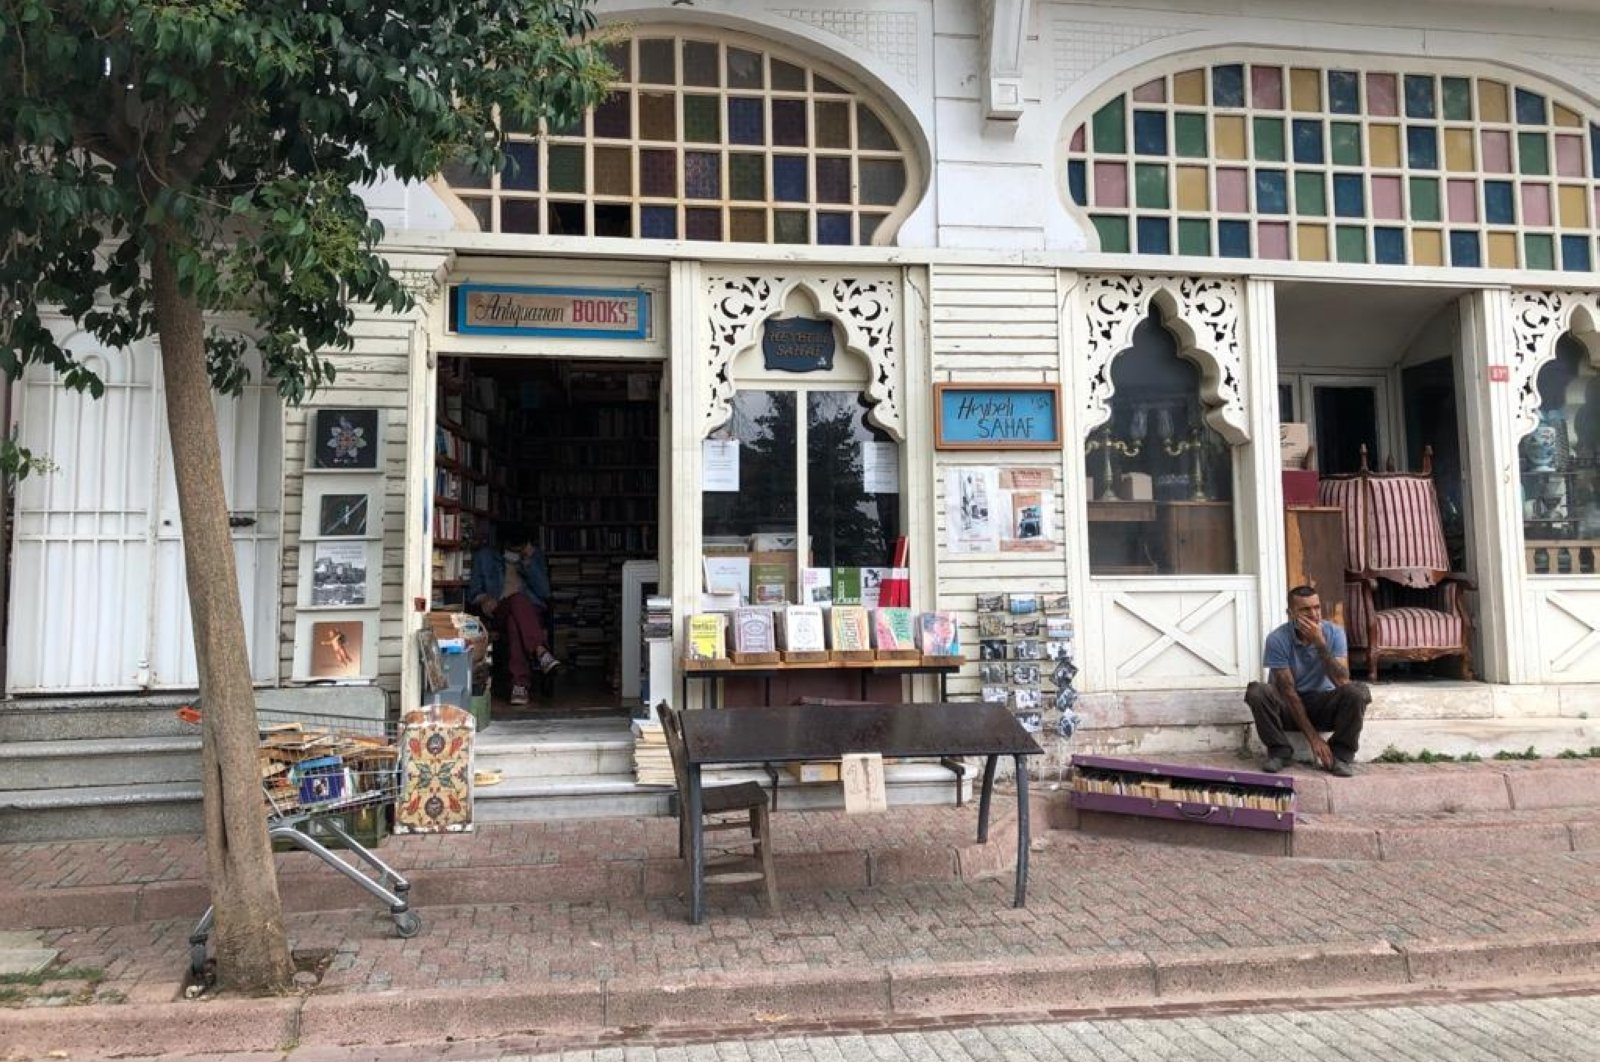 The exterior of the bookstore, decorated with oriental elements and stained colorful glass. (Photo by Matt Hanson)